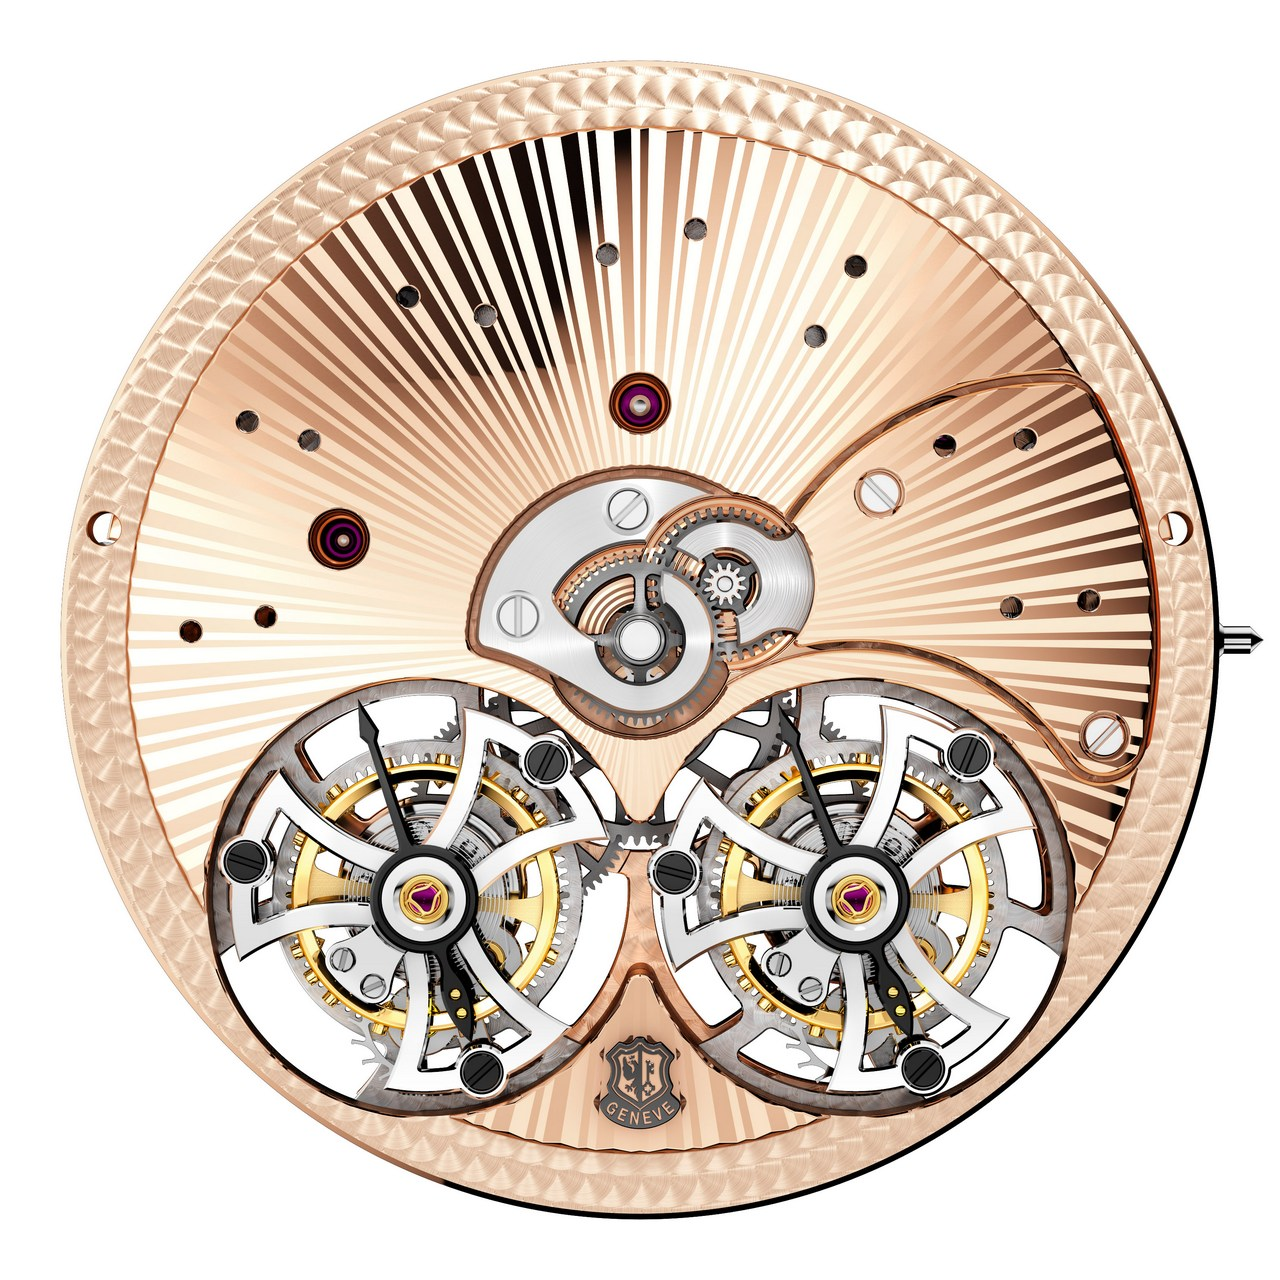 MANUFACTURE ROGER DUBUIS - Movement RD102